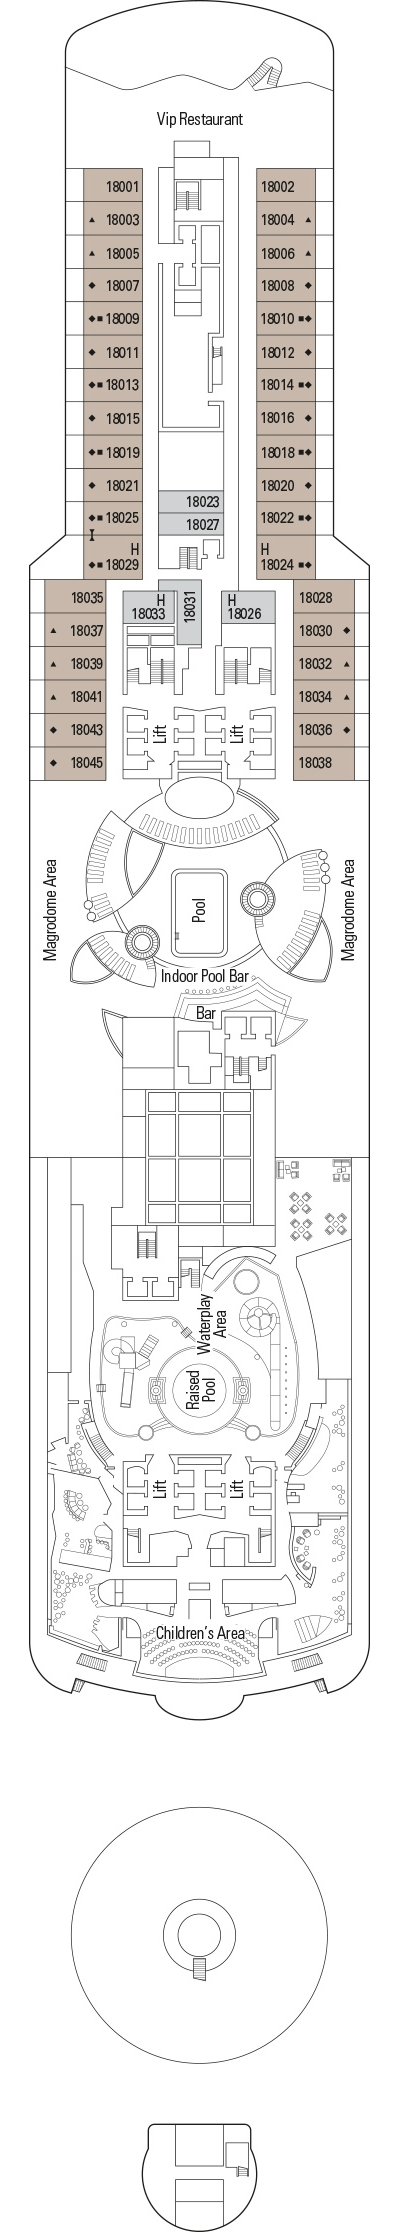 MSC Seaview Deck 18 layout